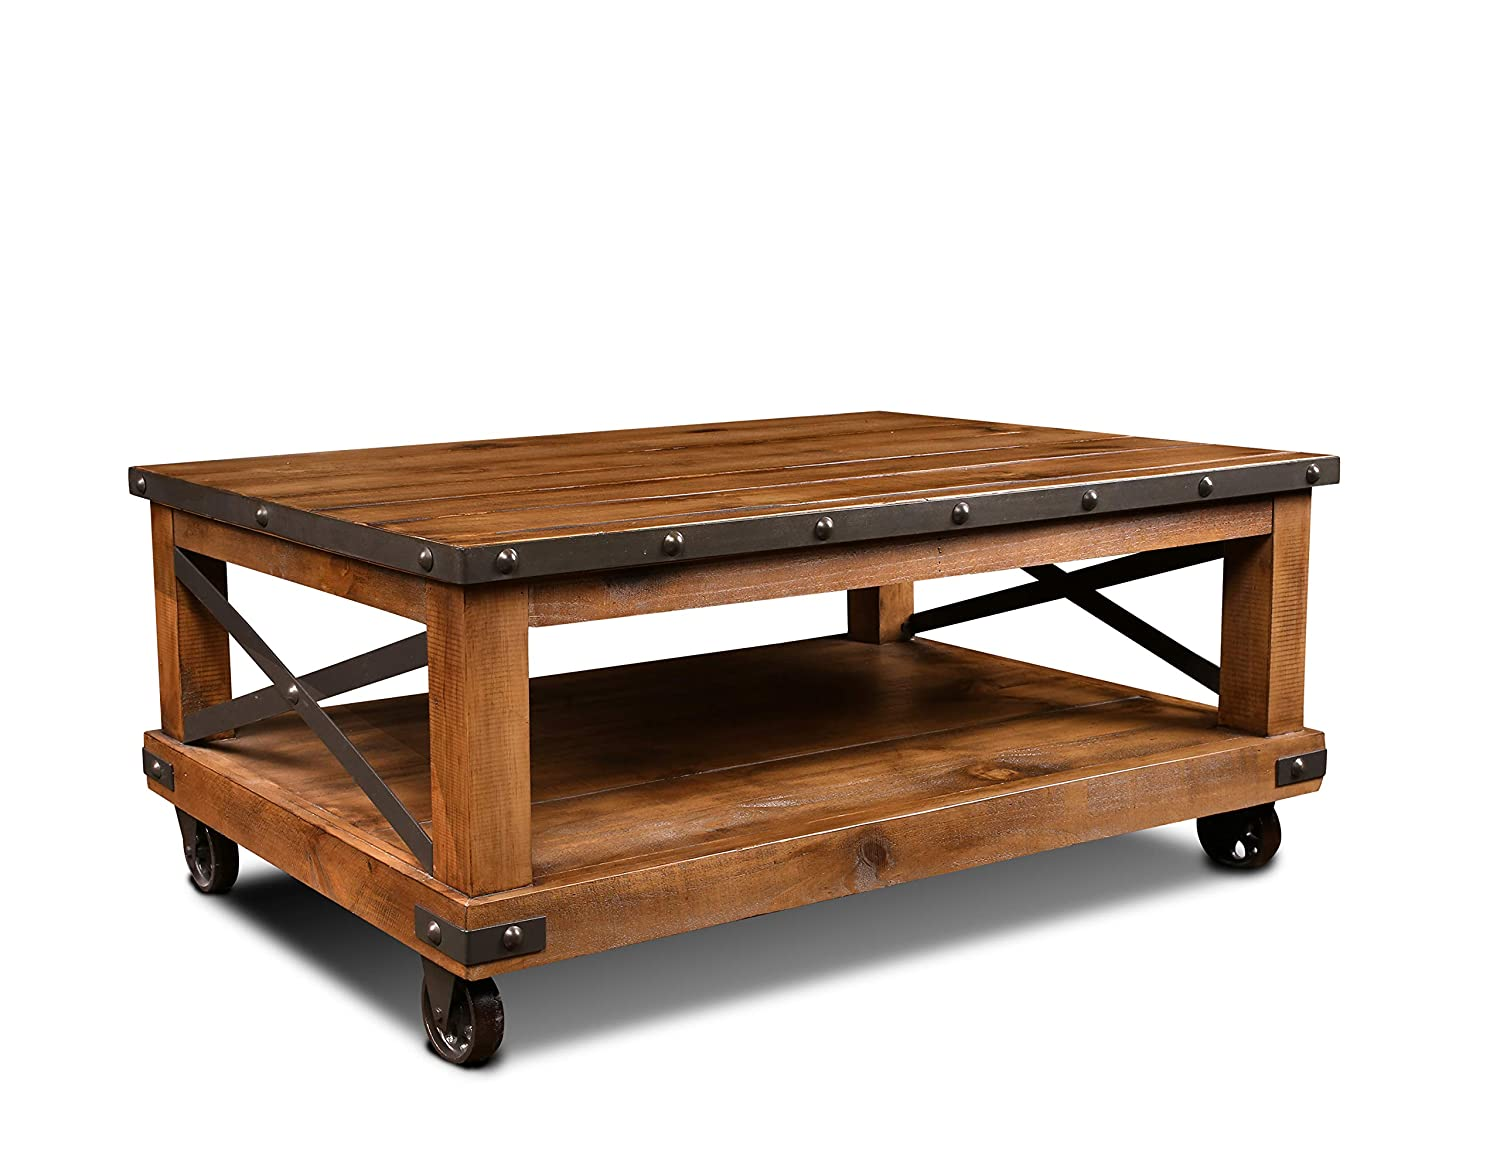 - Amazon.com: Sunset Trading Rustic City Coffee Table, Casters